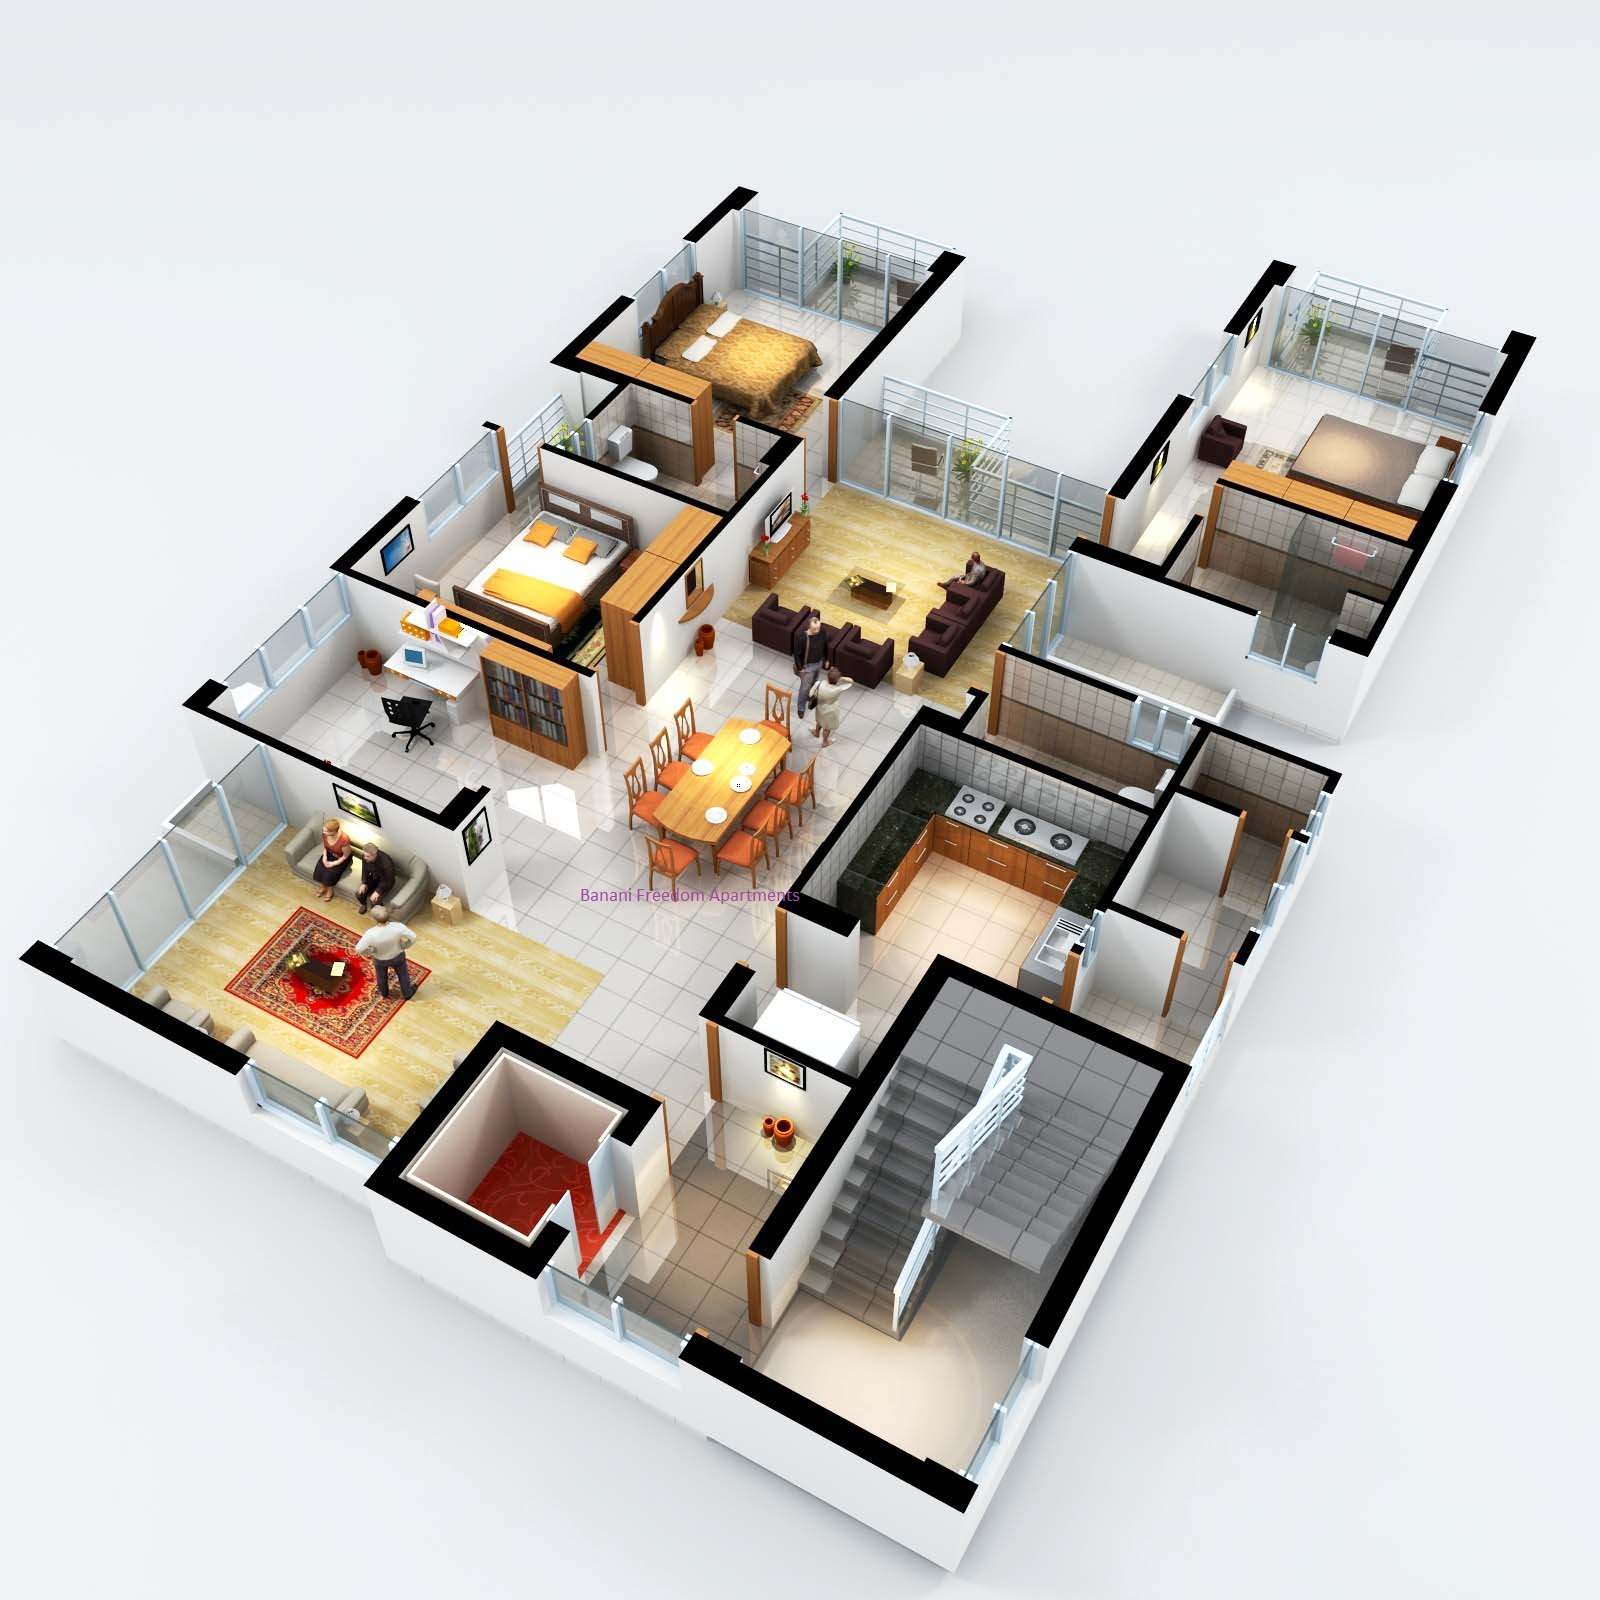 Banani freedom luxury apartments Home plan 3d